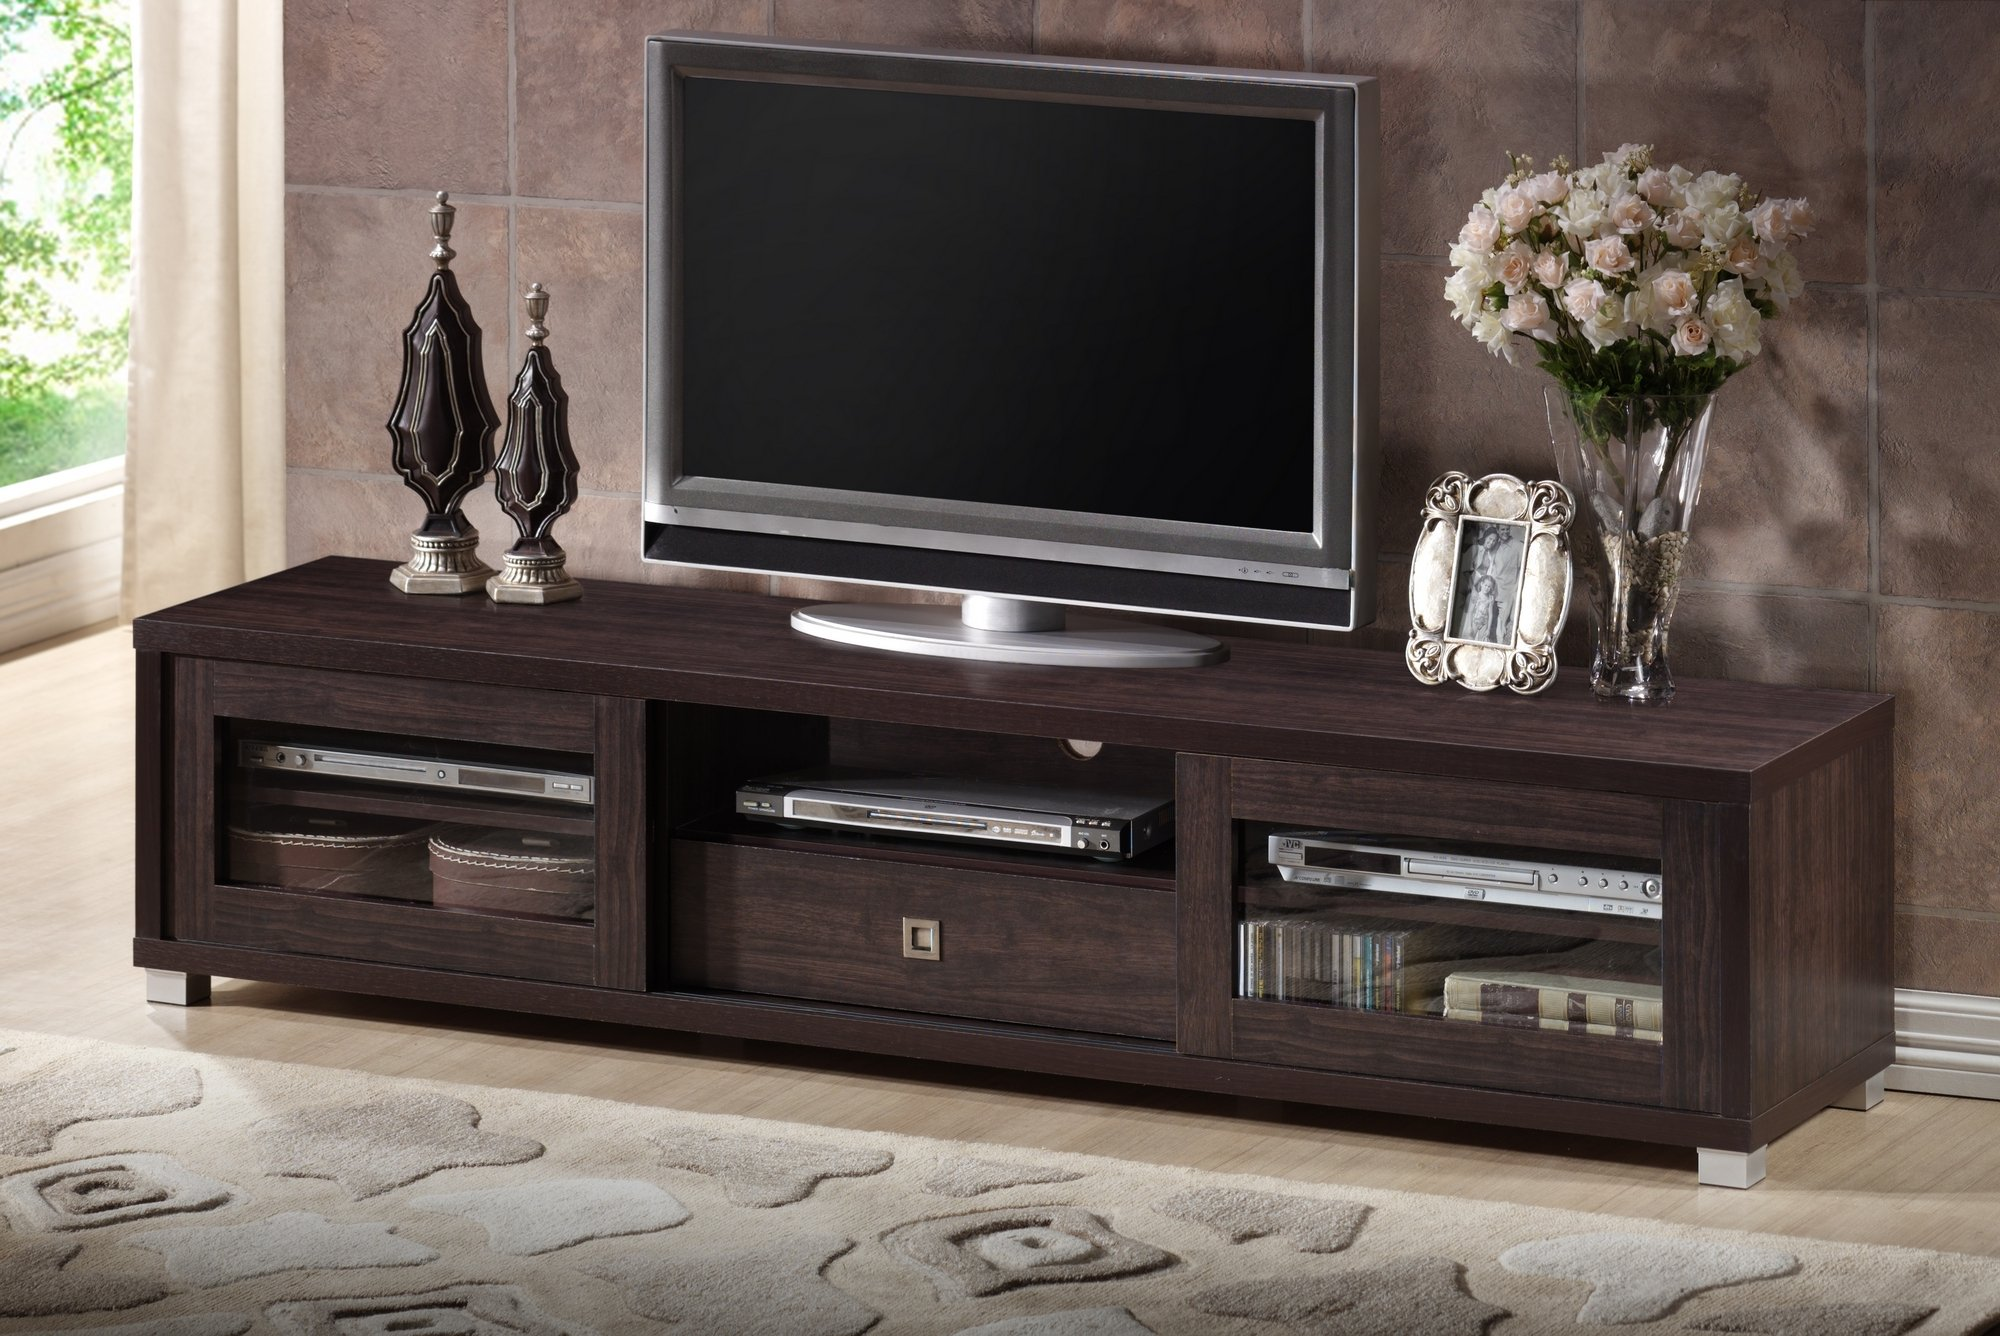 Wholesale Interiors Baxton Studio Beasley TV Cabinet with 2 Sliding Doors and Drawer, 70'', Dark Brown by Wholesale Interiors